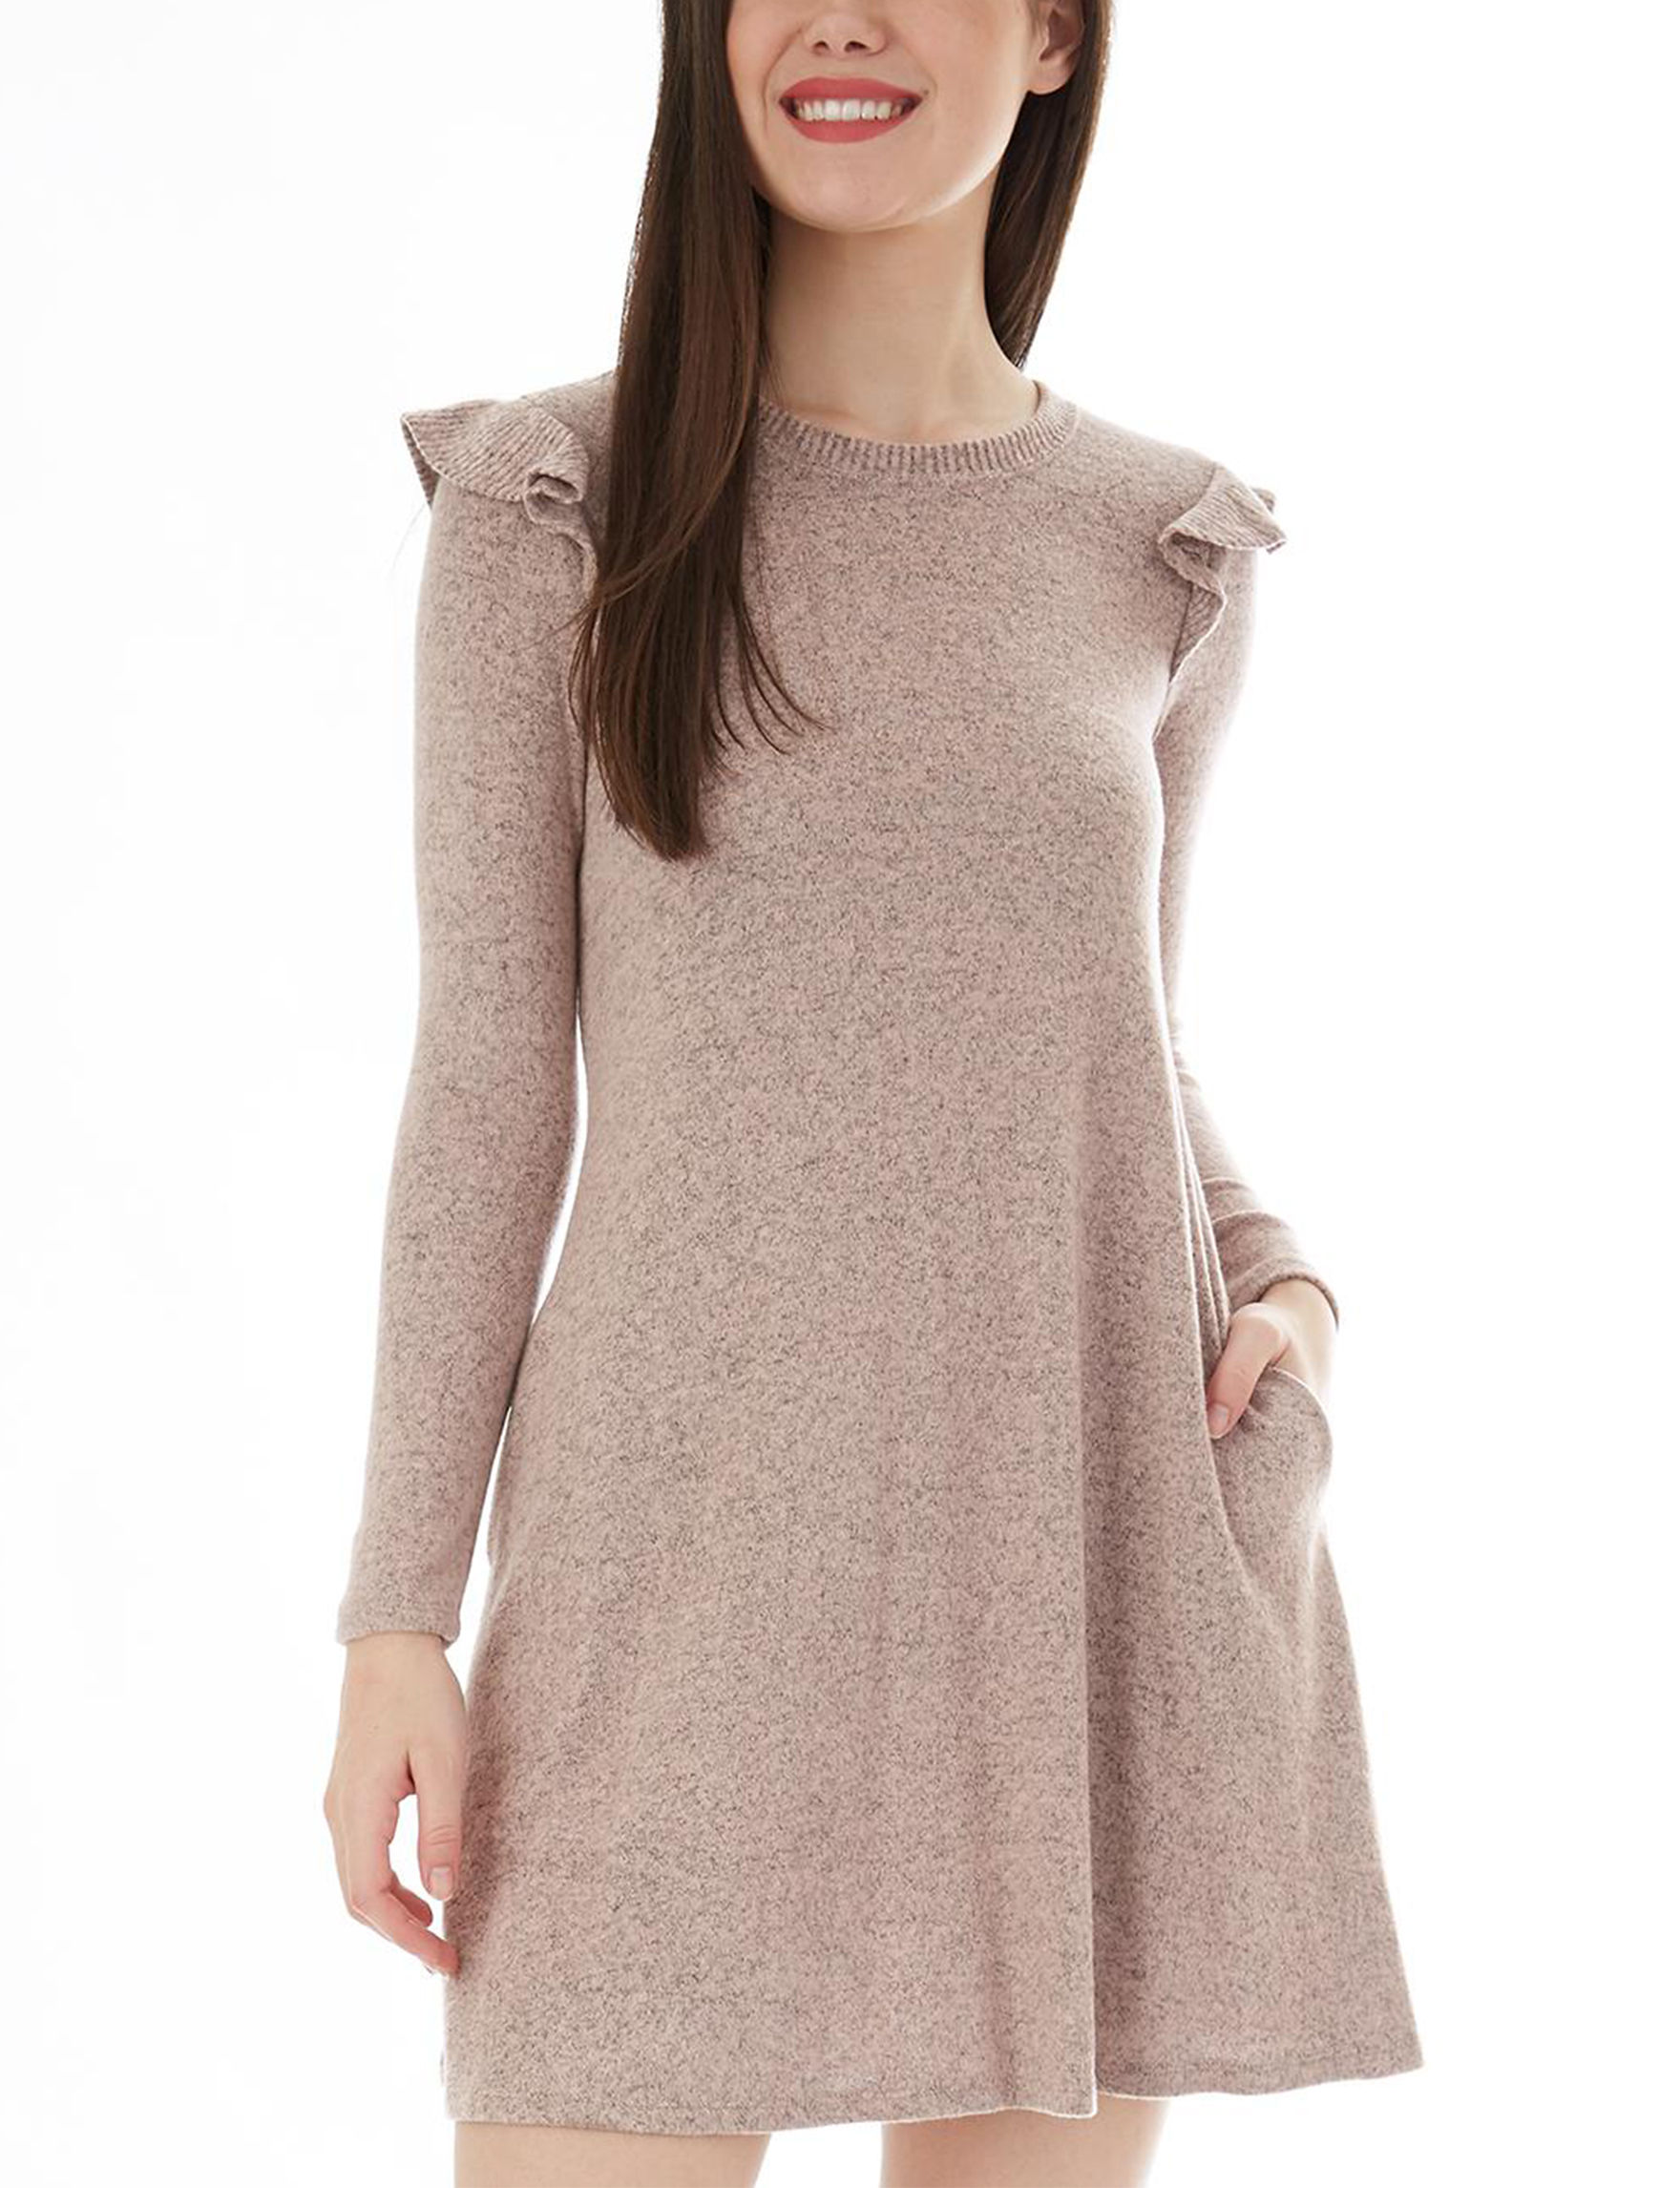 A. Byer Rose Everyday & Casual Sheath Dresses Sweater Dresses